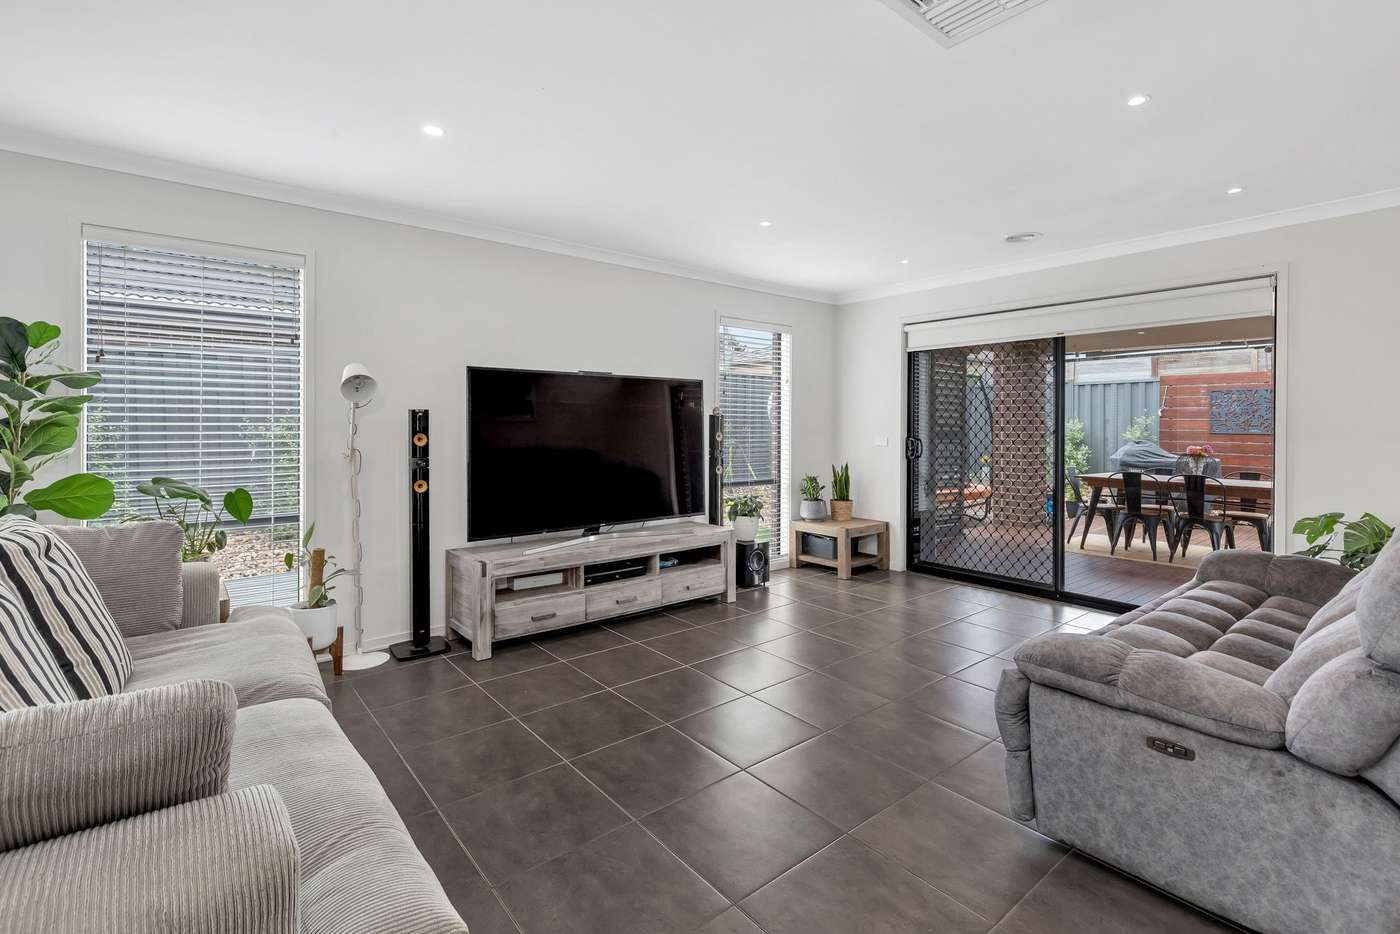 Sixth view of Homely house listing, 37 Weavers Street, Manor Lakes VIC 3024